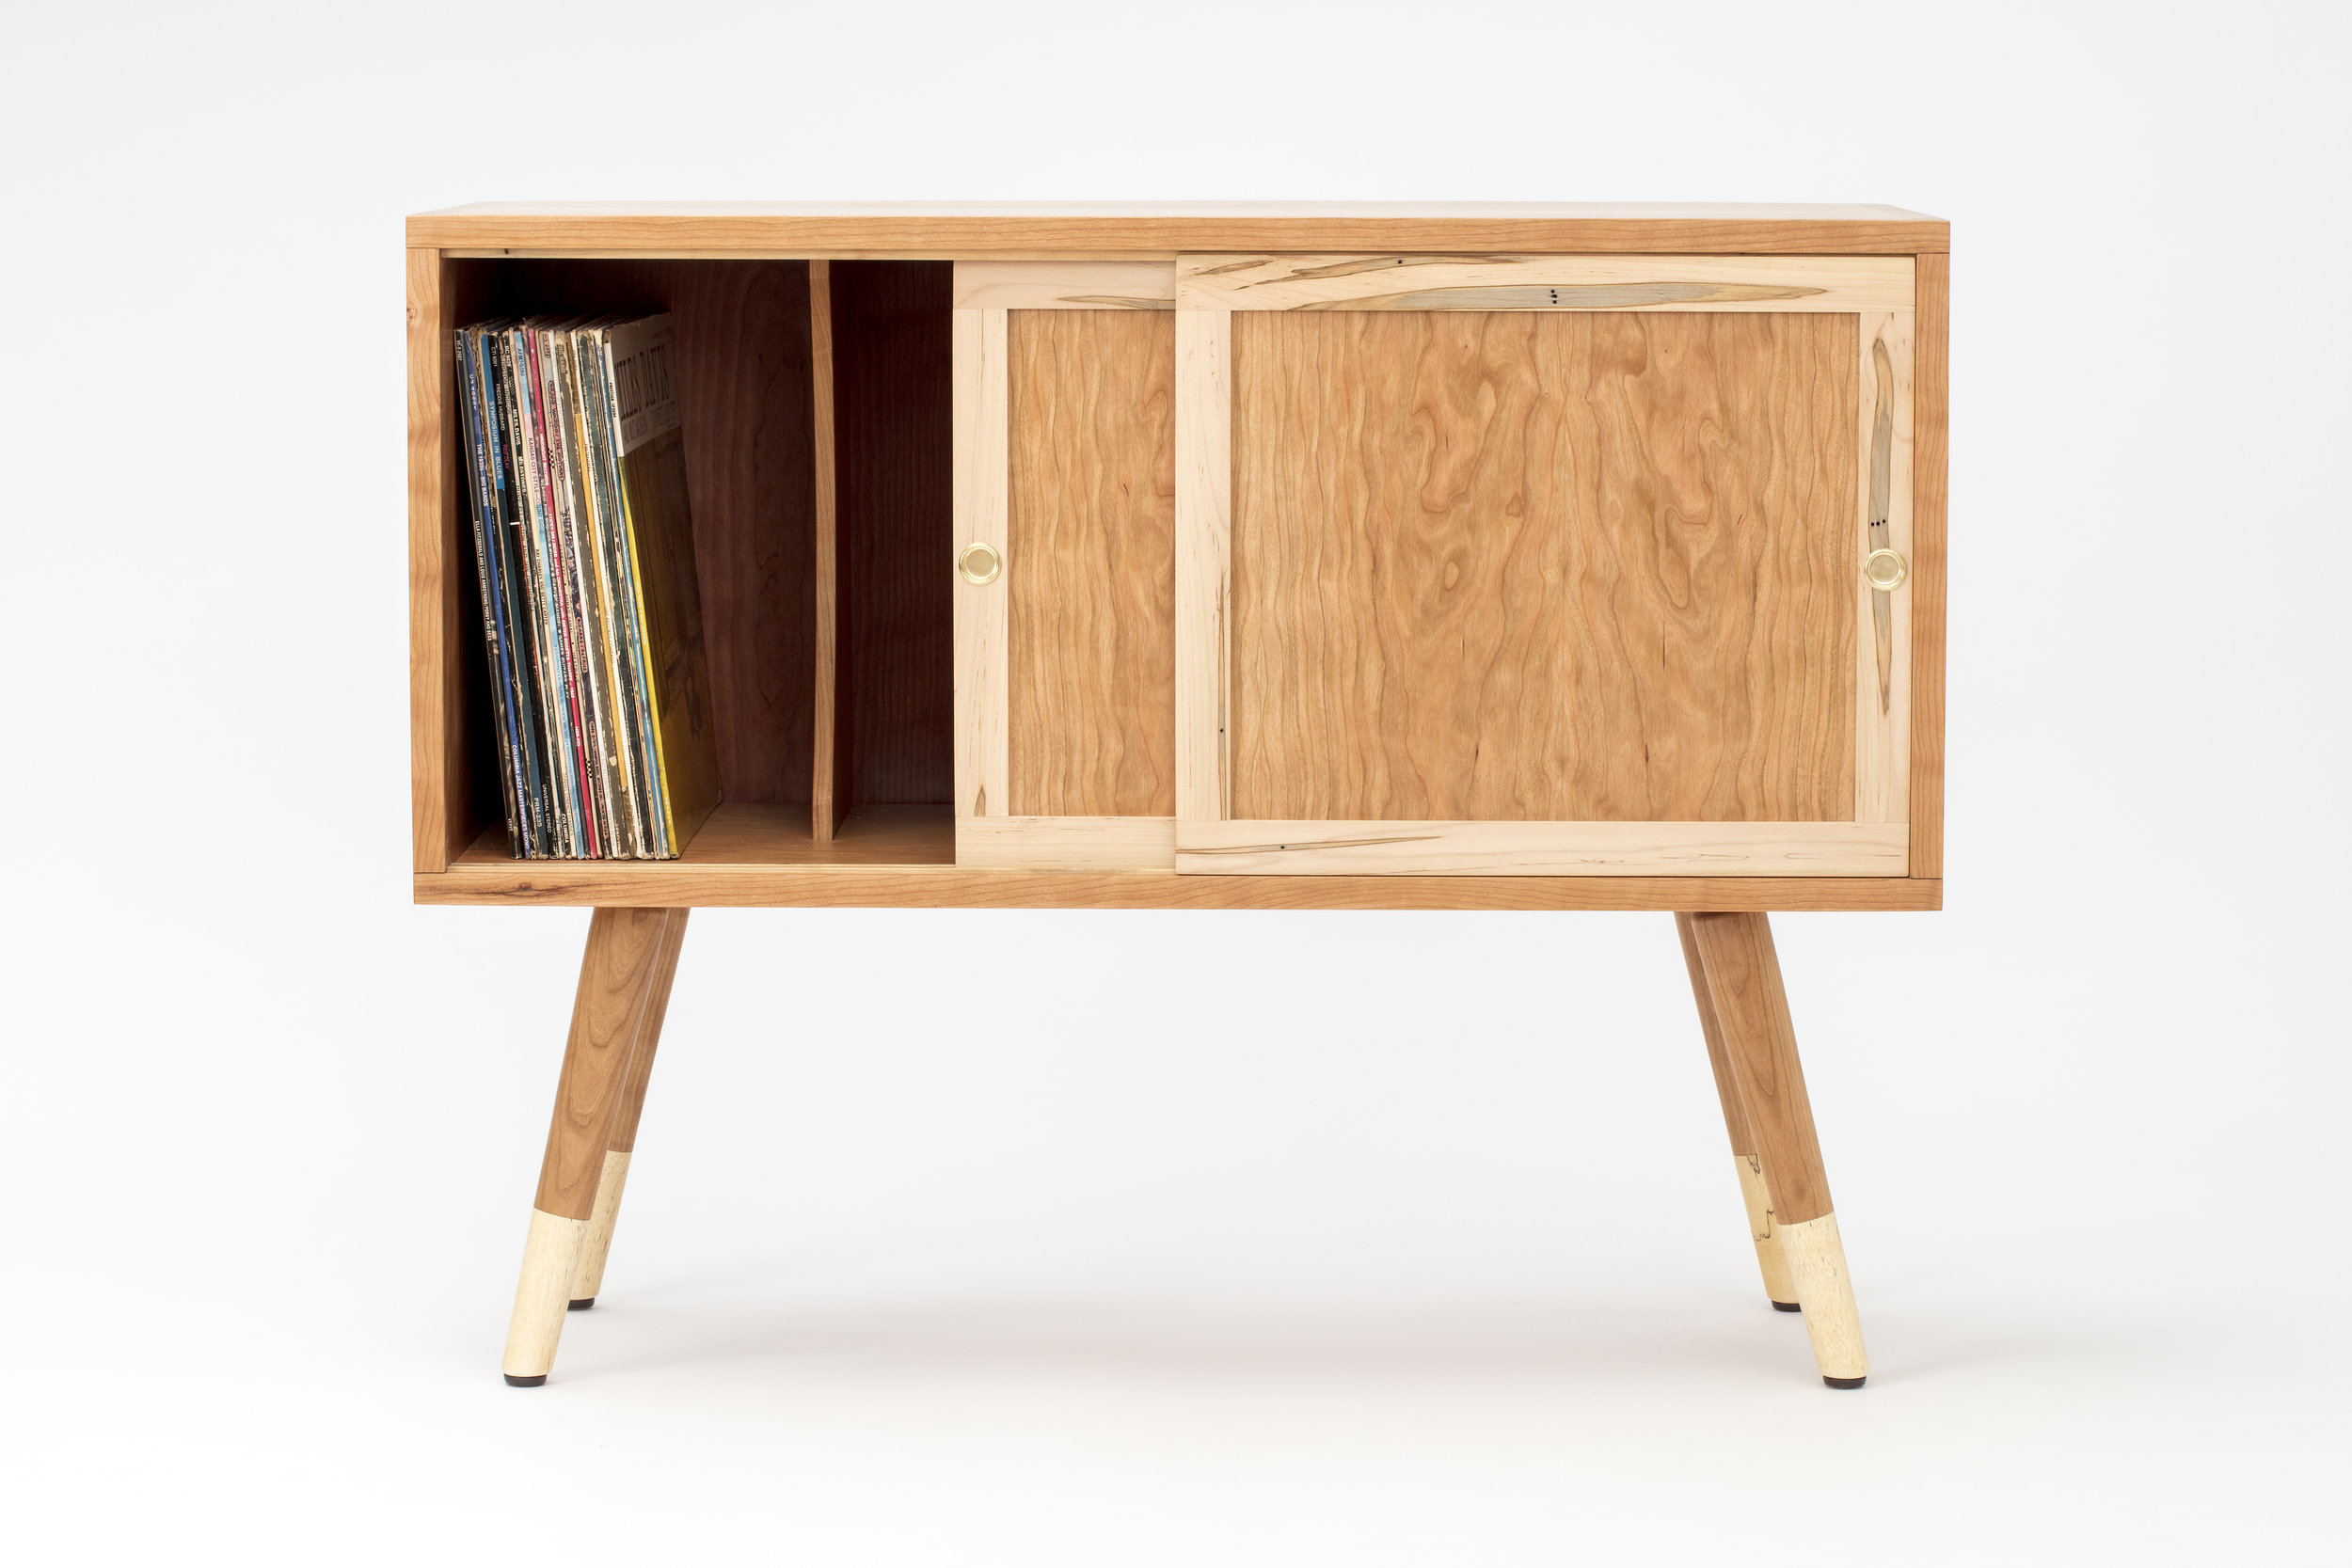 The WilliamCabinet - My favorite project from 2018! I reproduced two record cabinets from a design I had made in 2017. Box joint case construction, sliding frame-and-panel doors, dividers, two tone legs attached to the case with through wedged tenons. Both went off to live in California.